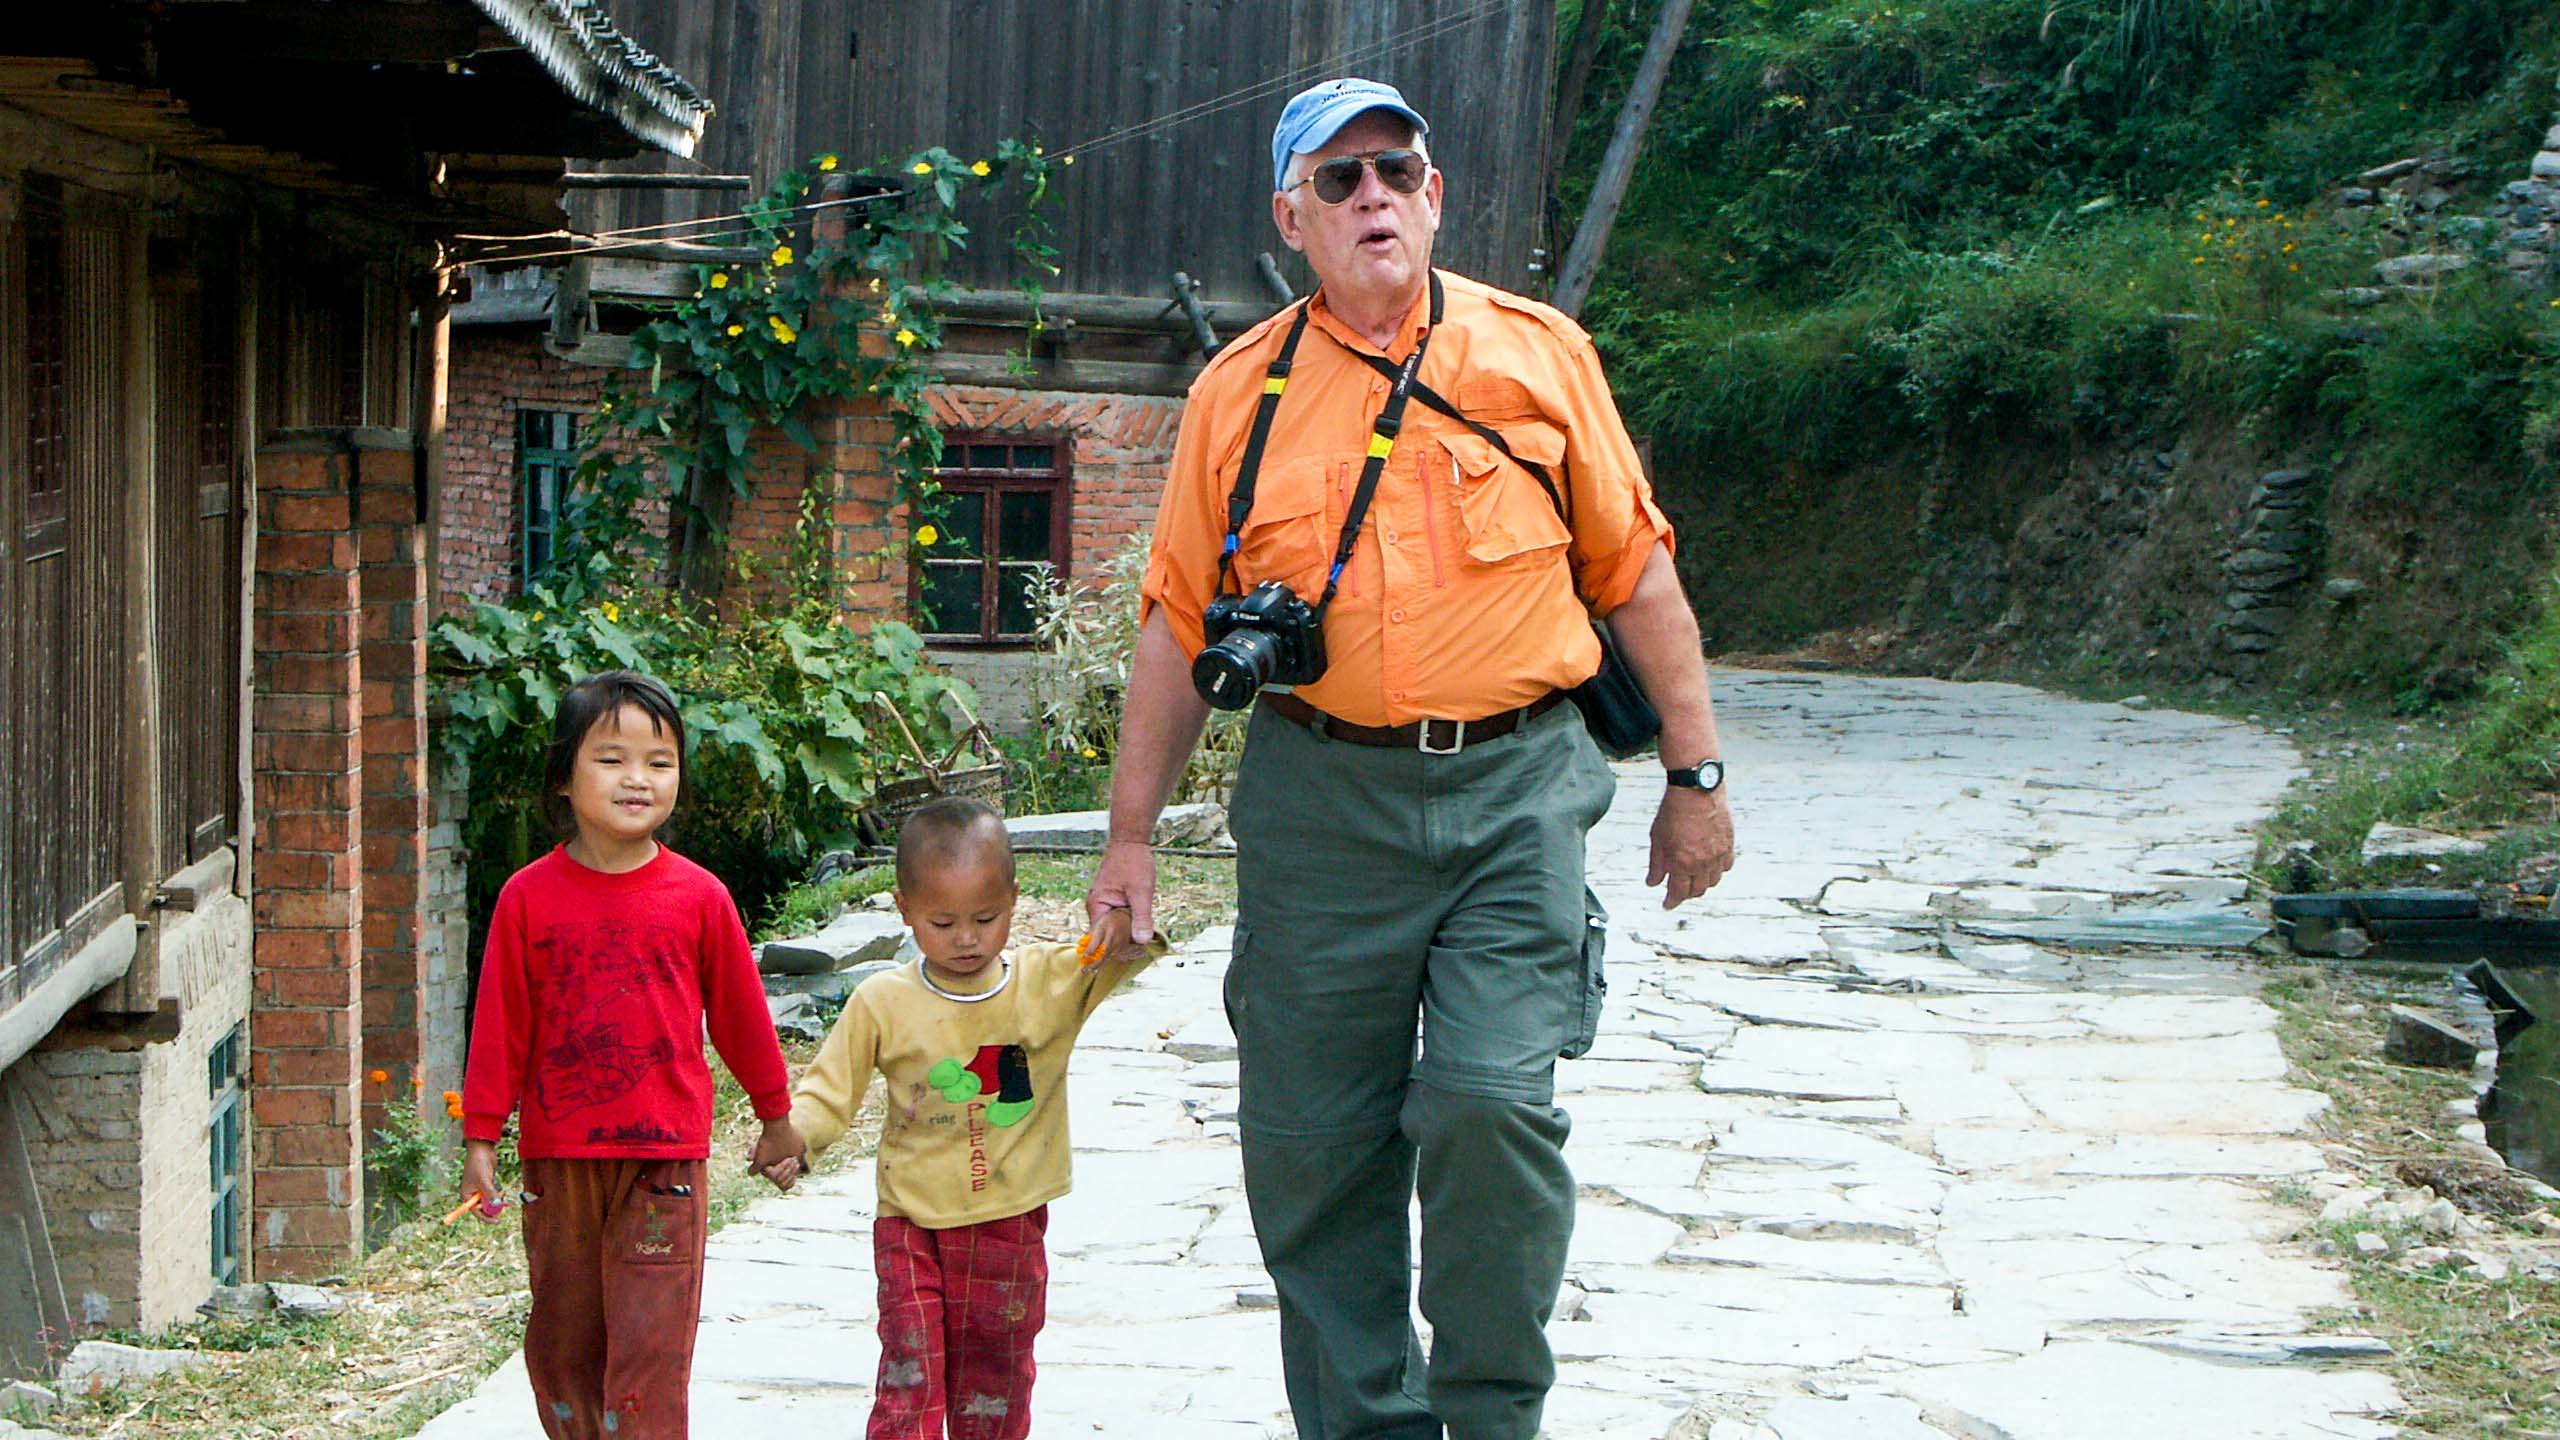 Traveler walks with young Chinese children